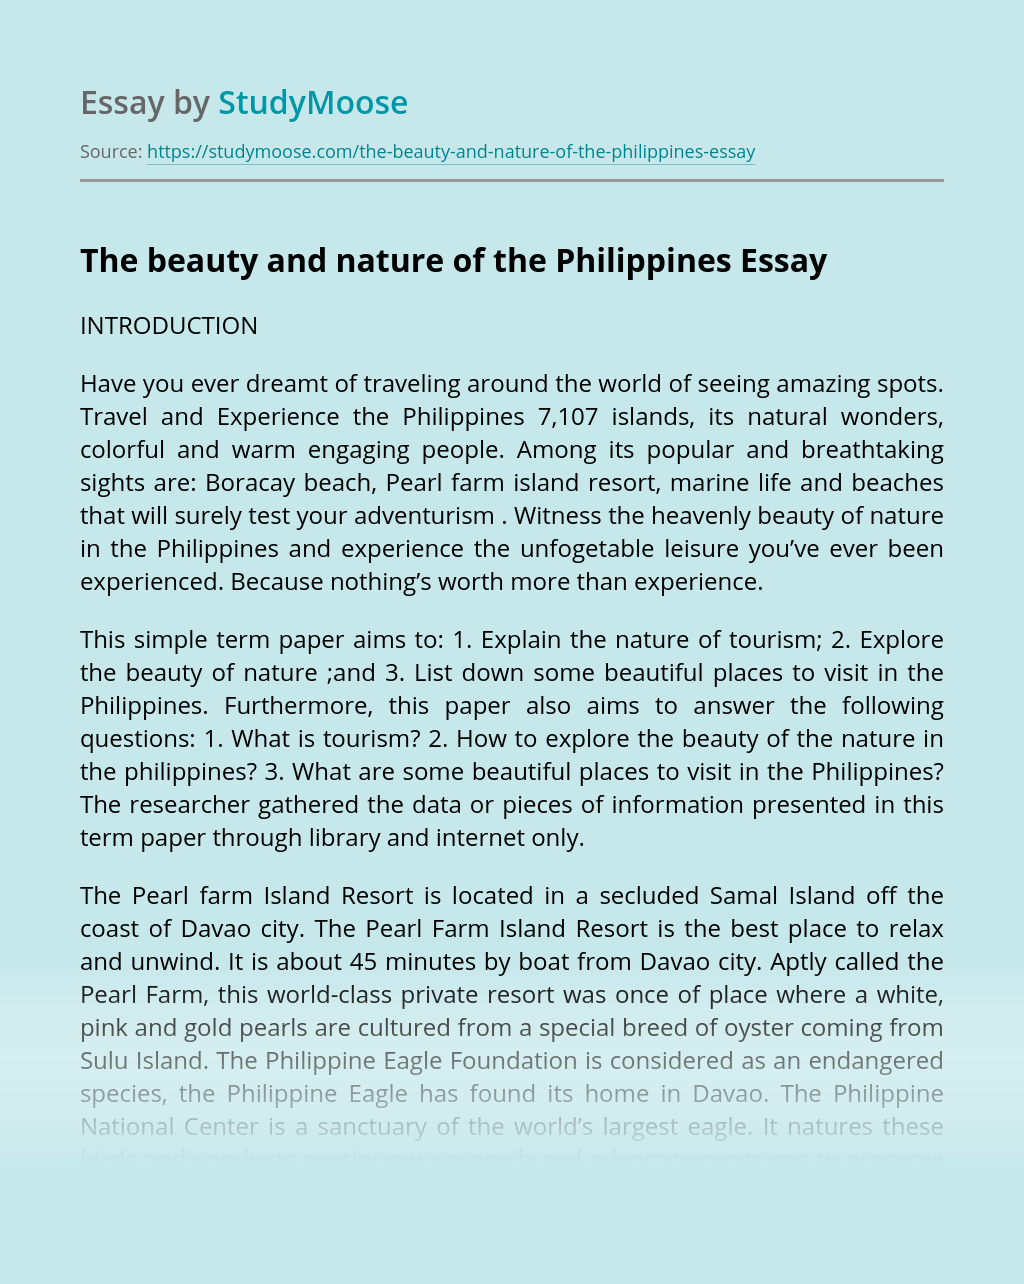 The beauty and nature of the Philippines